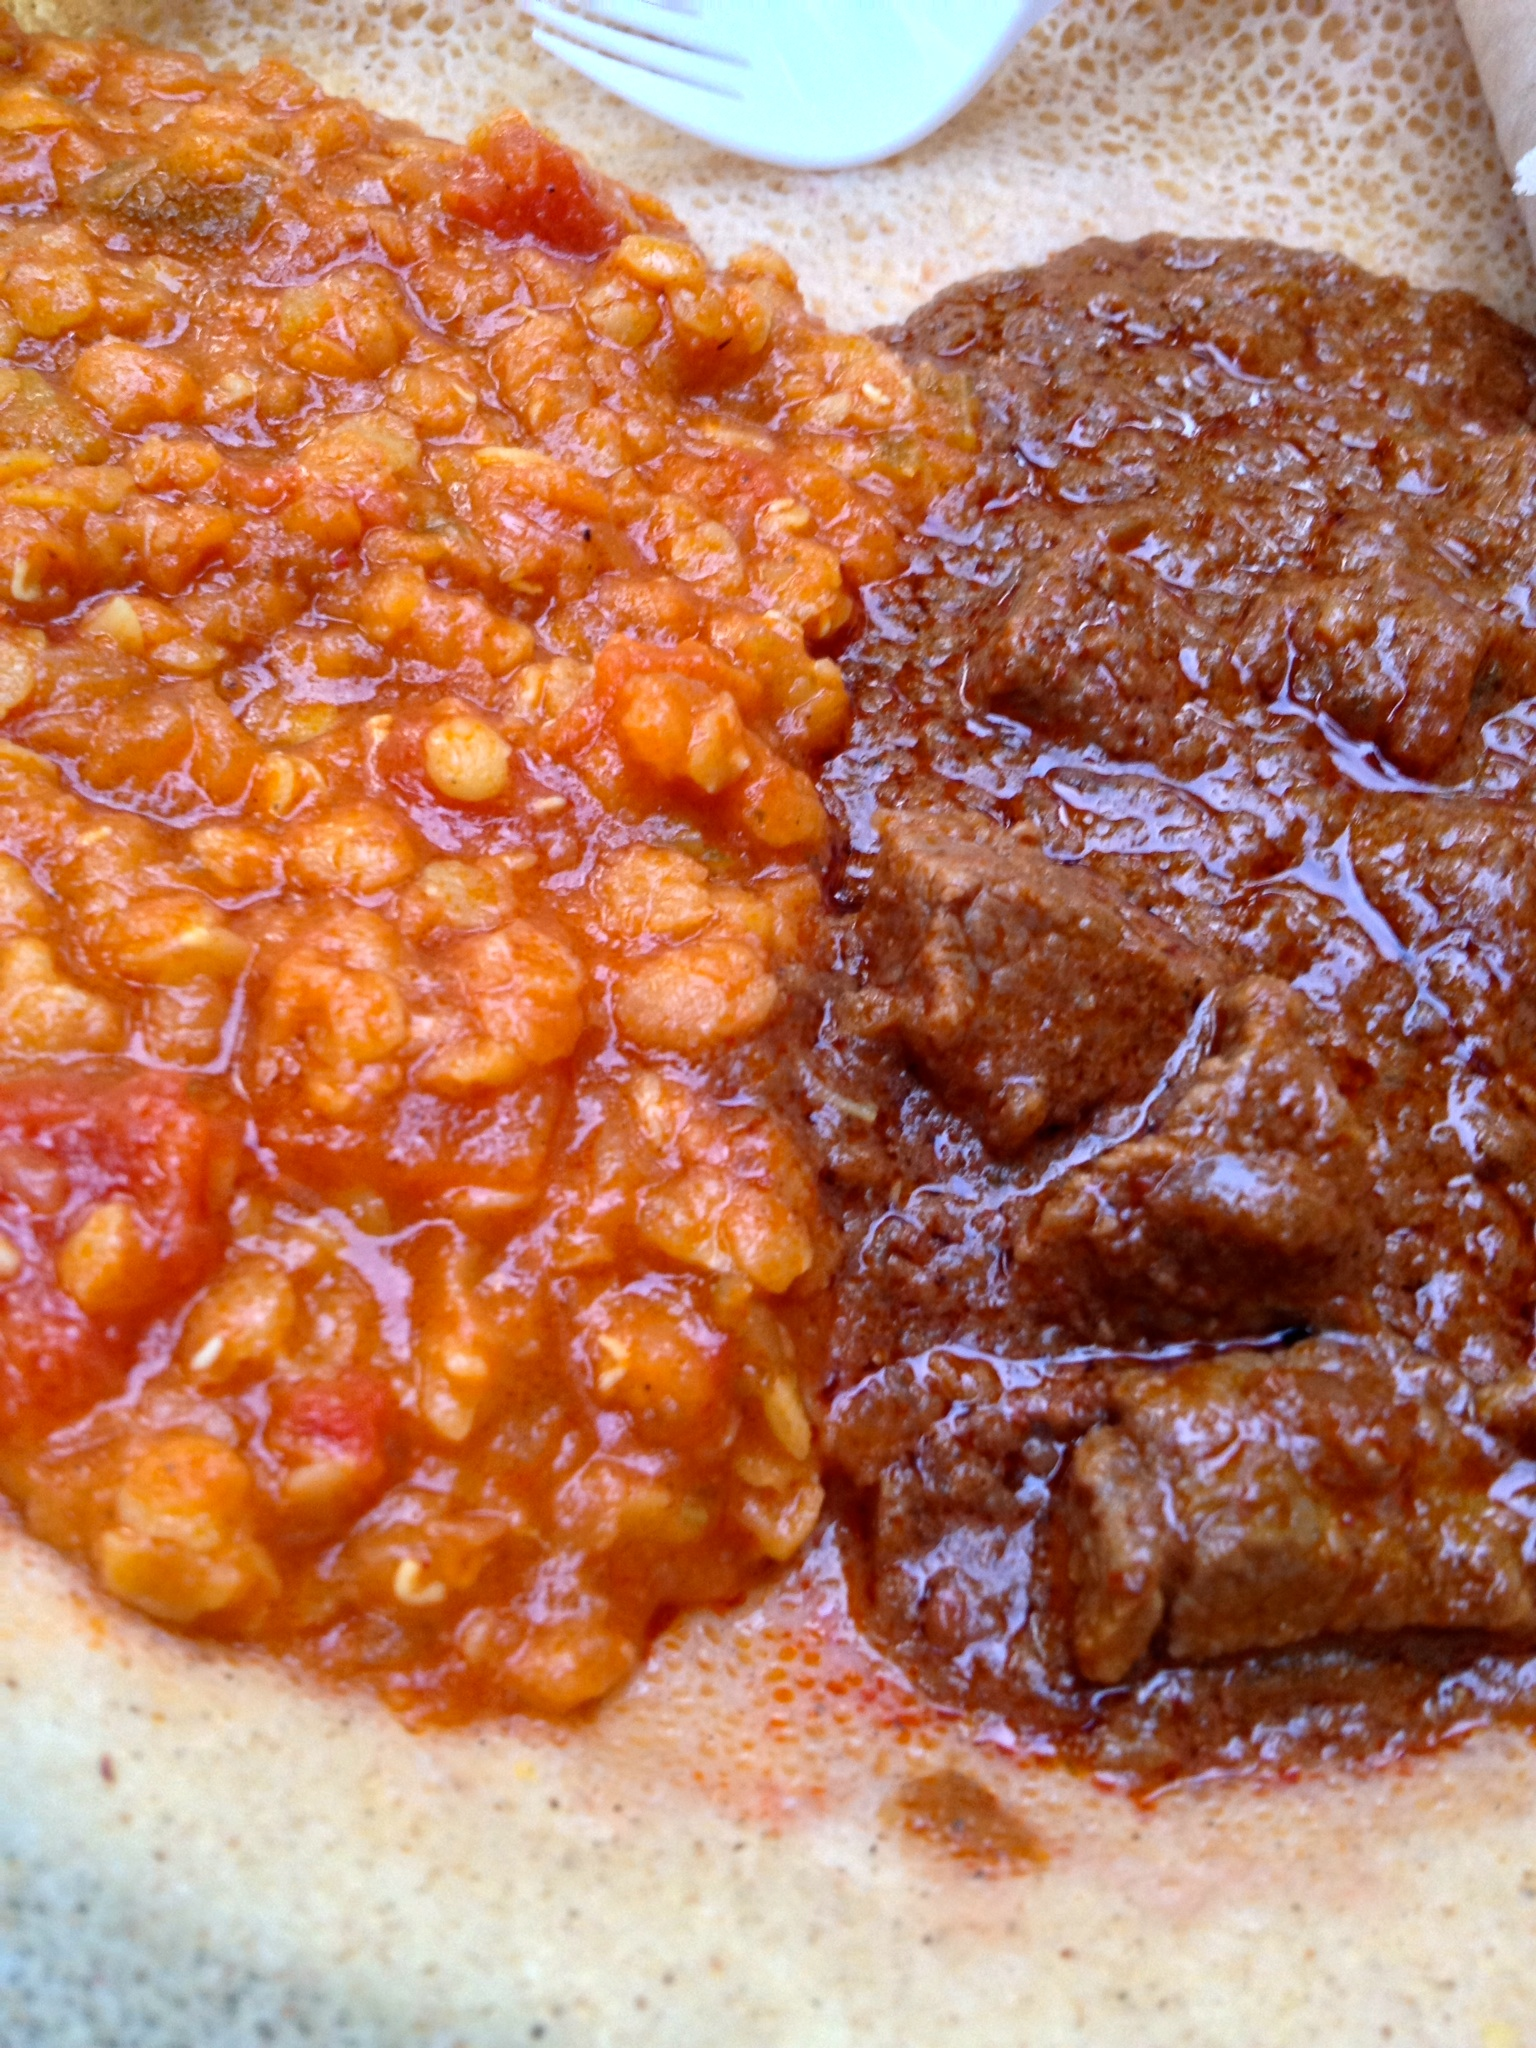 Lentils and beef on injera at Adulis